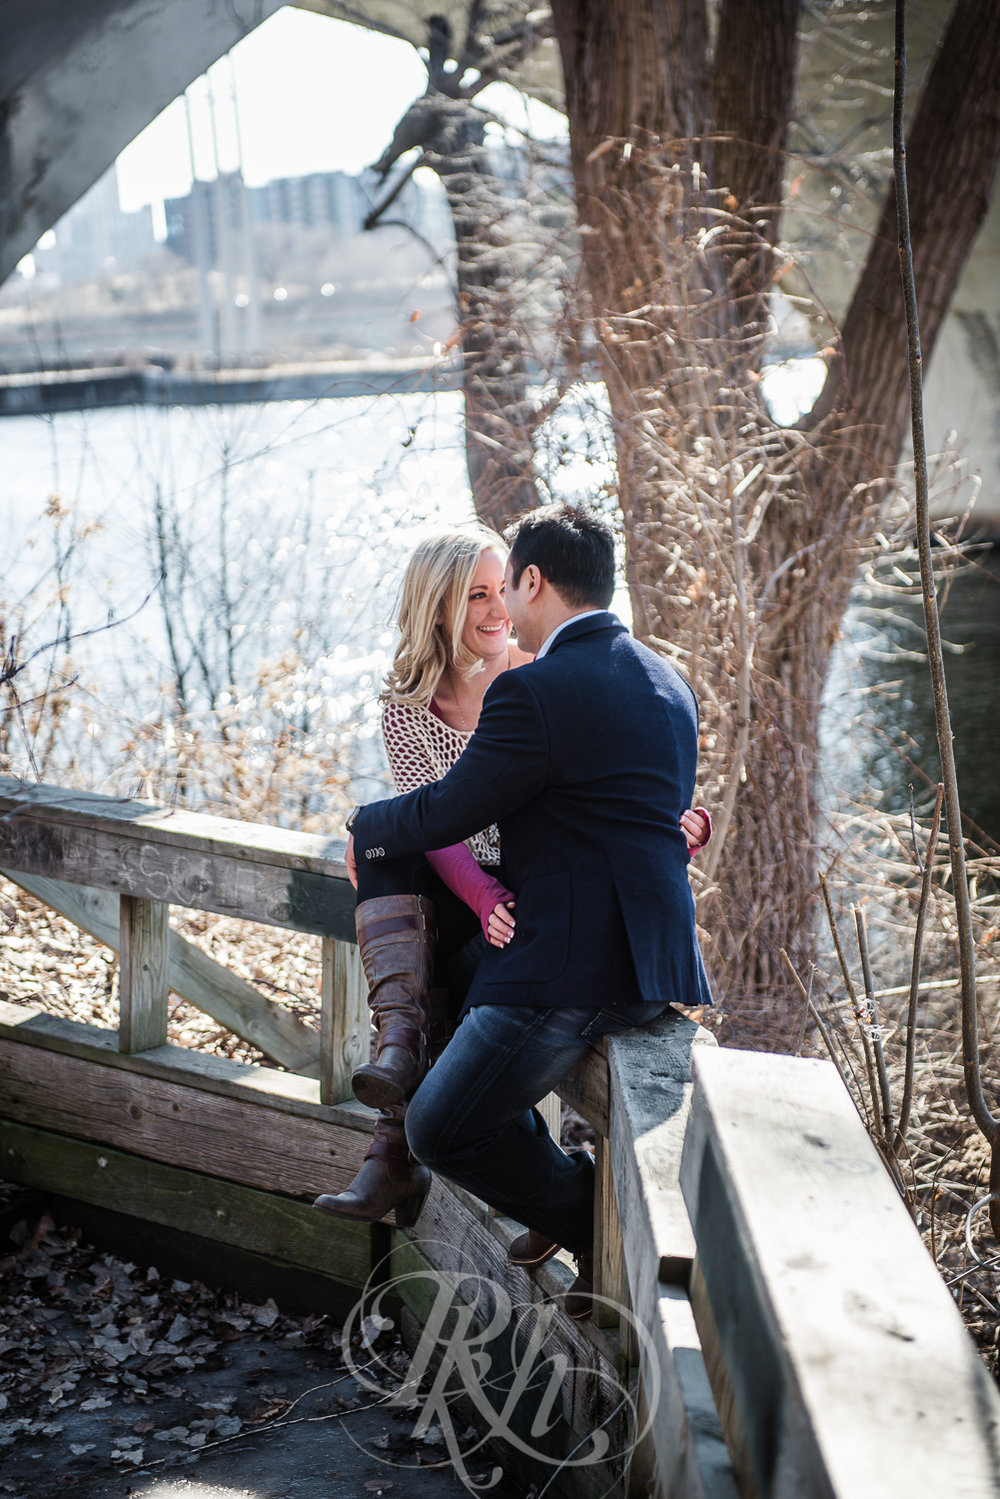 Justine & Patrick - Minnesota Winter Engagement Photography - RKH Images -3.jpg